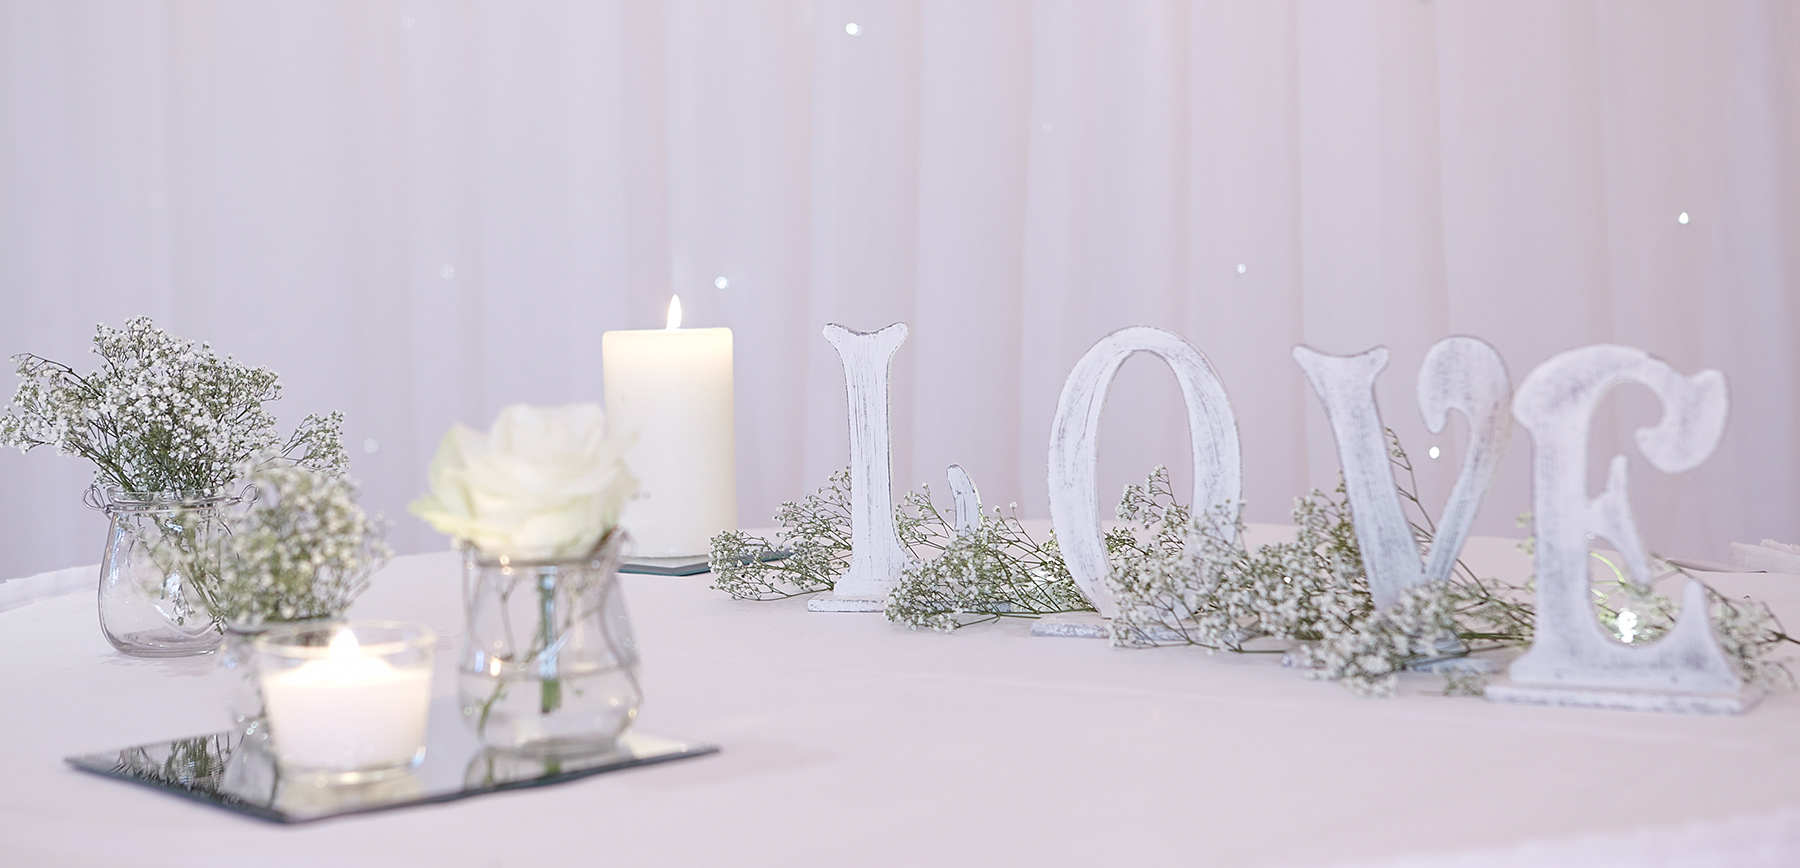 Lighting Decor Creations - Wedding Venue Styling